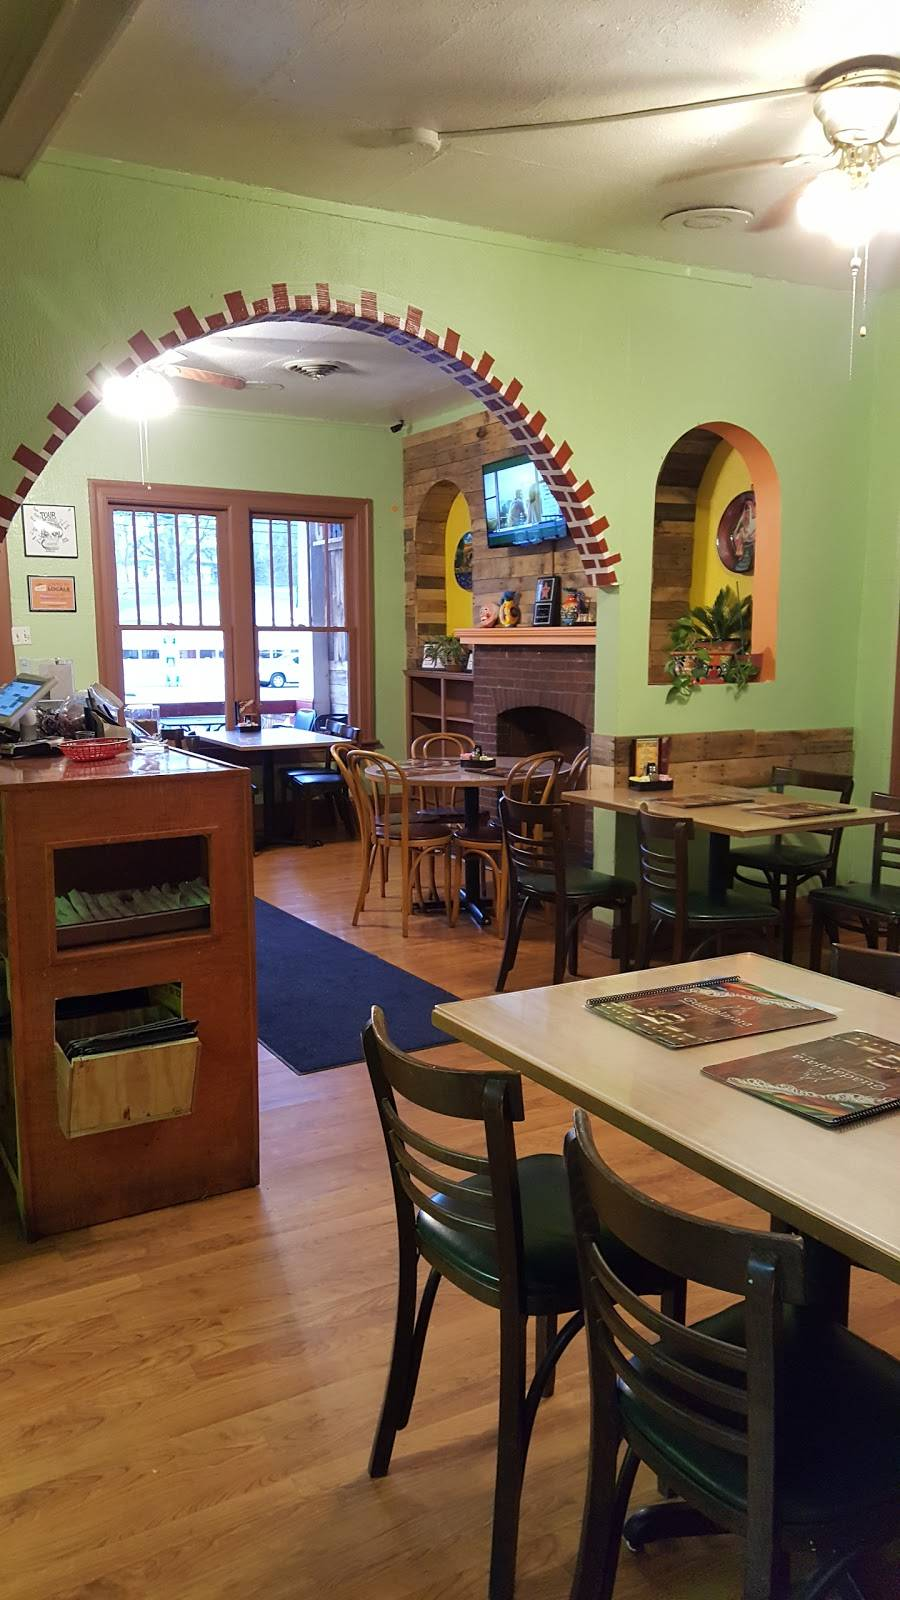 Guadalajara Mexican Restaurant | meal takeaway | 2206 Fontaine Ave, Charlottesville, VA 22903, USA | 4349792424 OR +1 434-979-2424